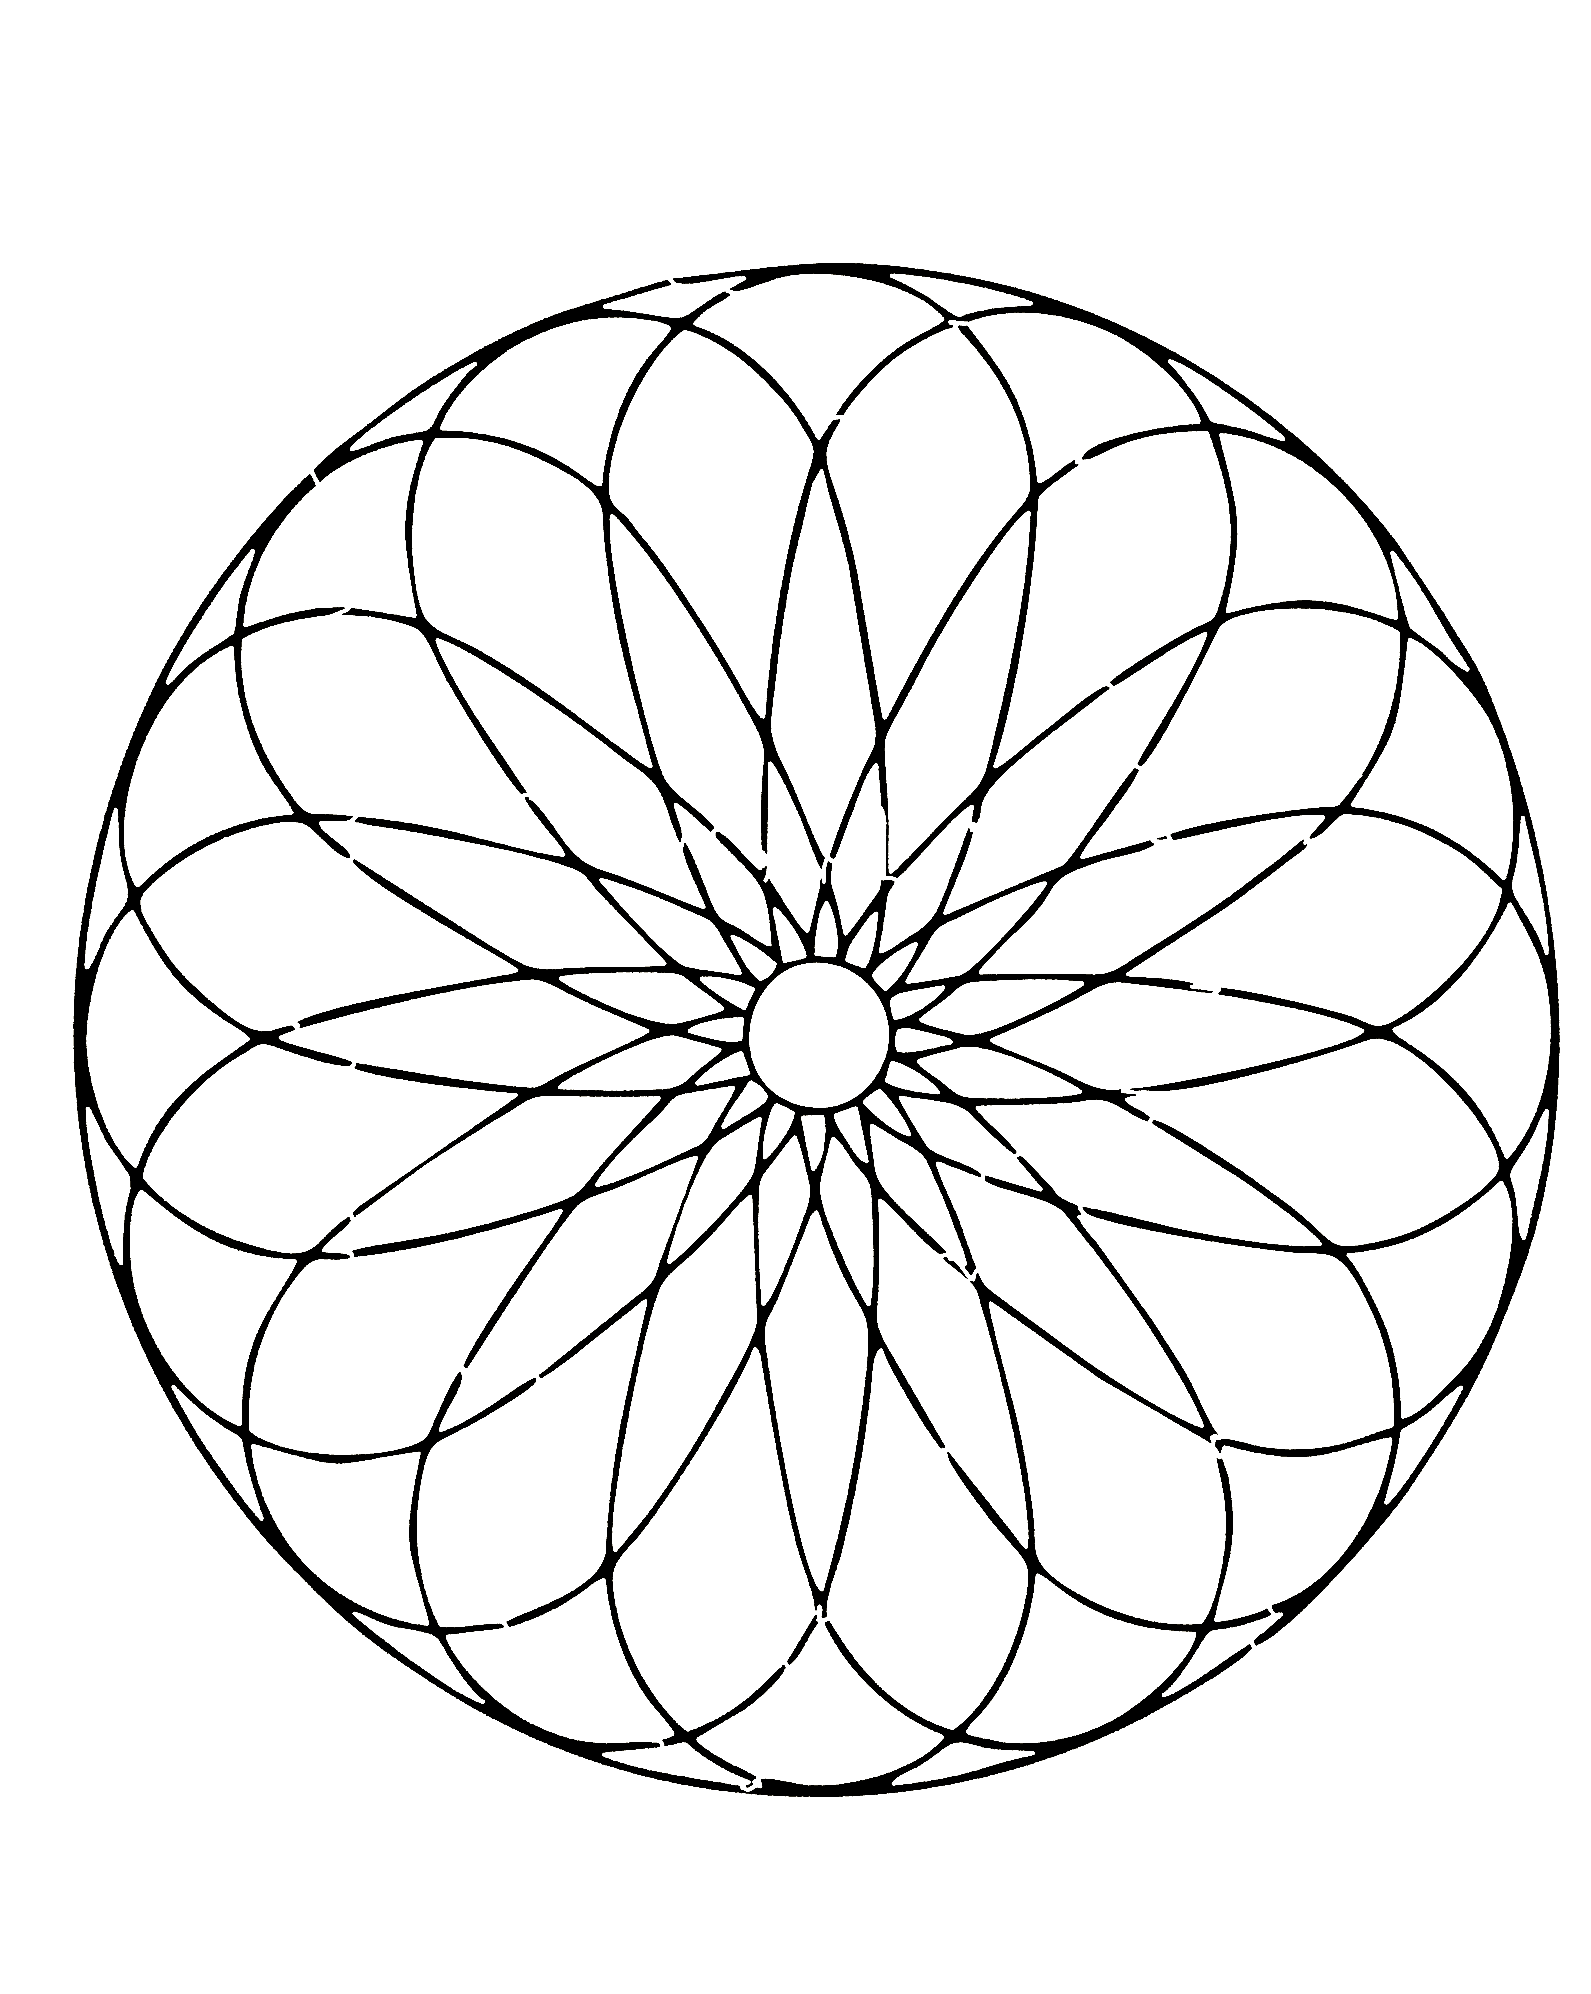 Simple mandala 72 - M&alas Coloring pages for kids to ...